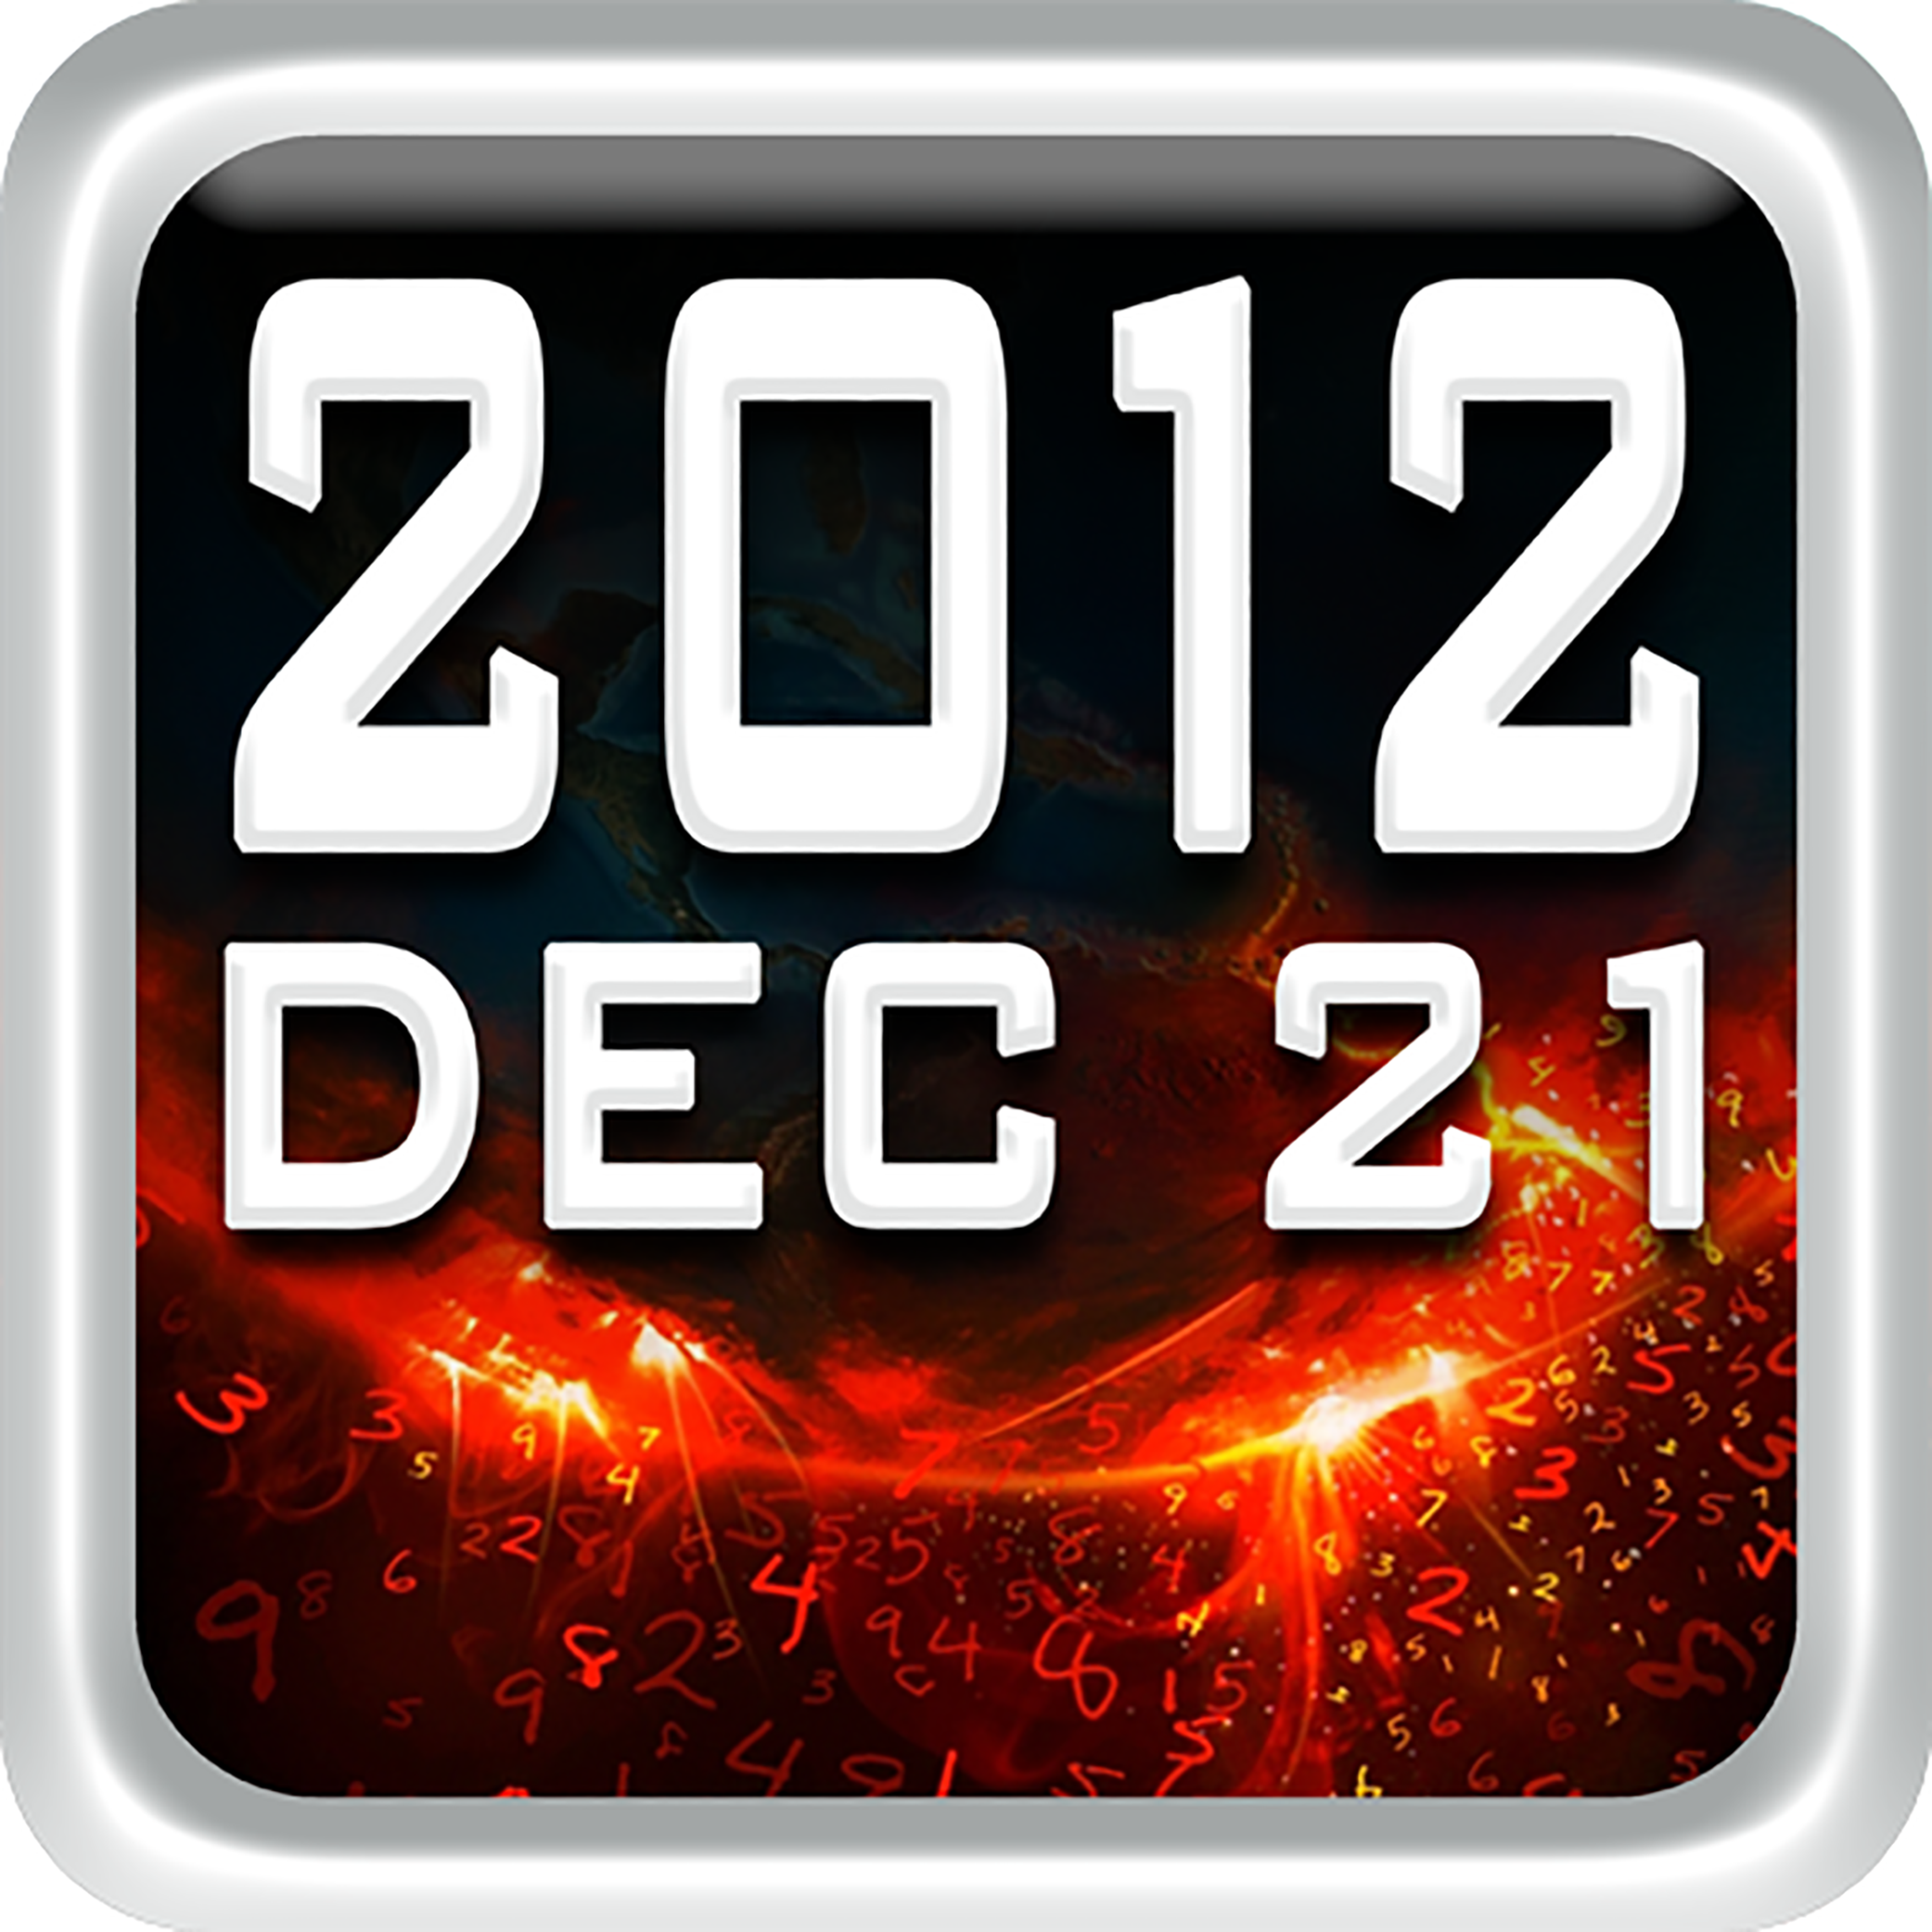 2012 End of the World Countdown